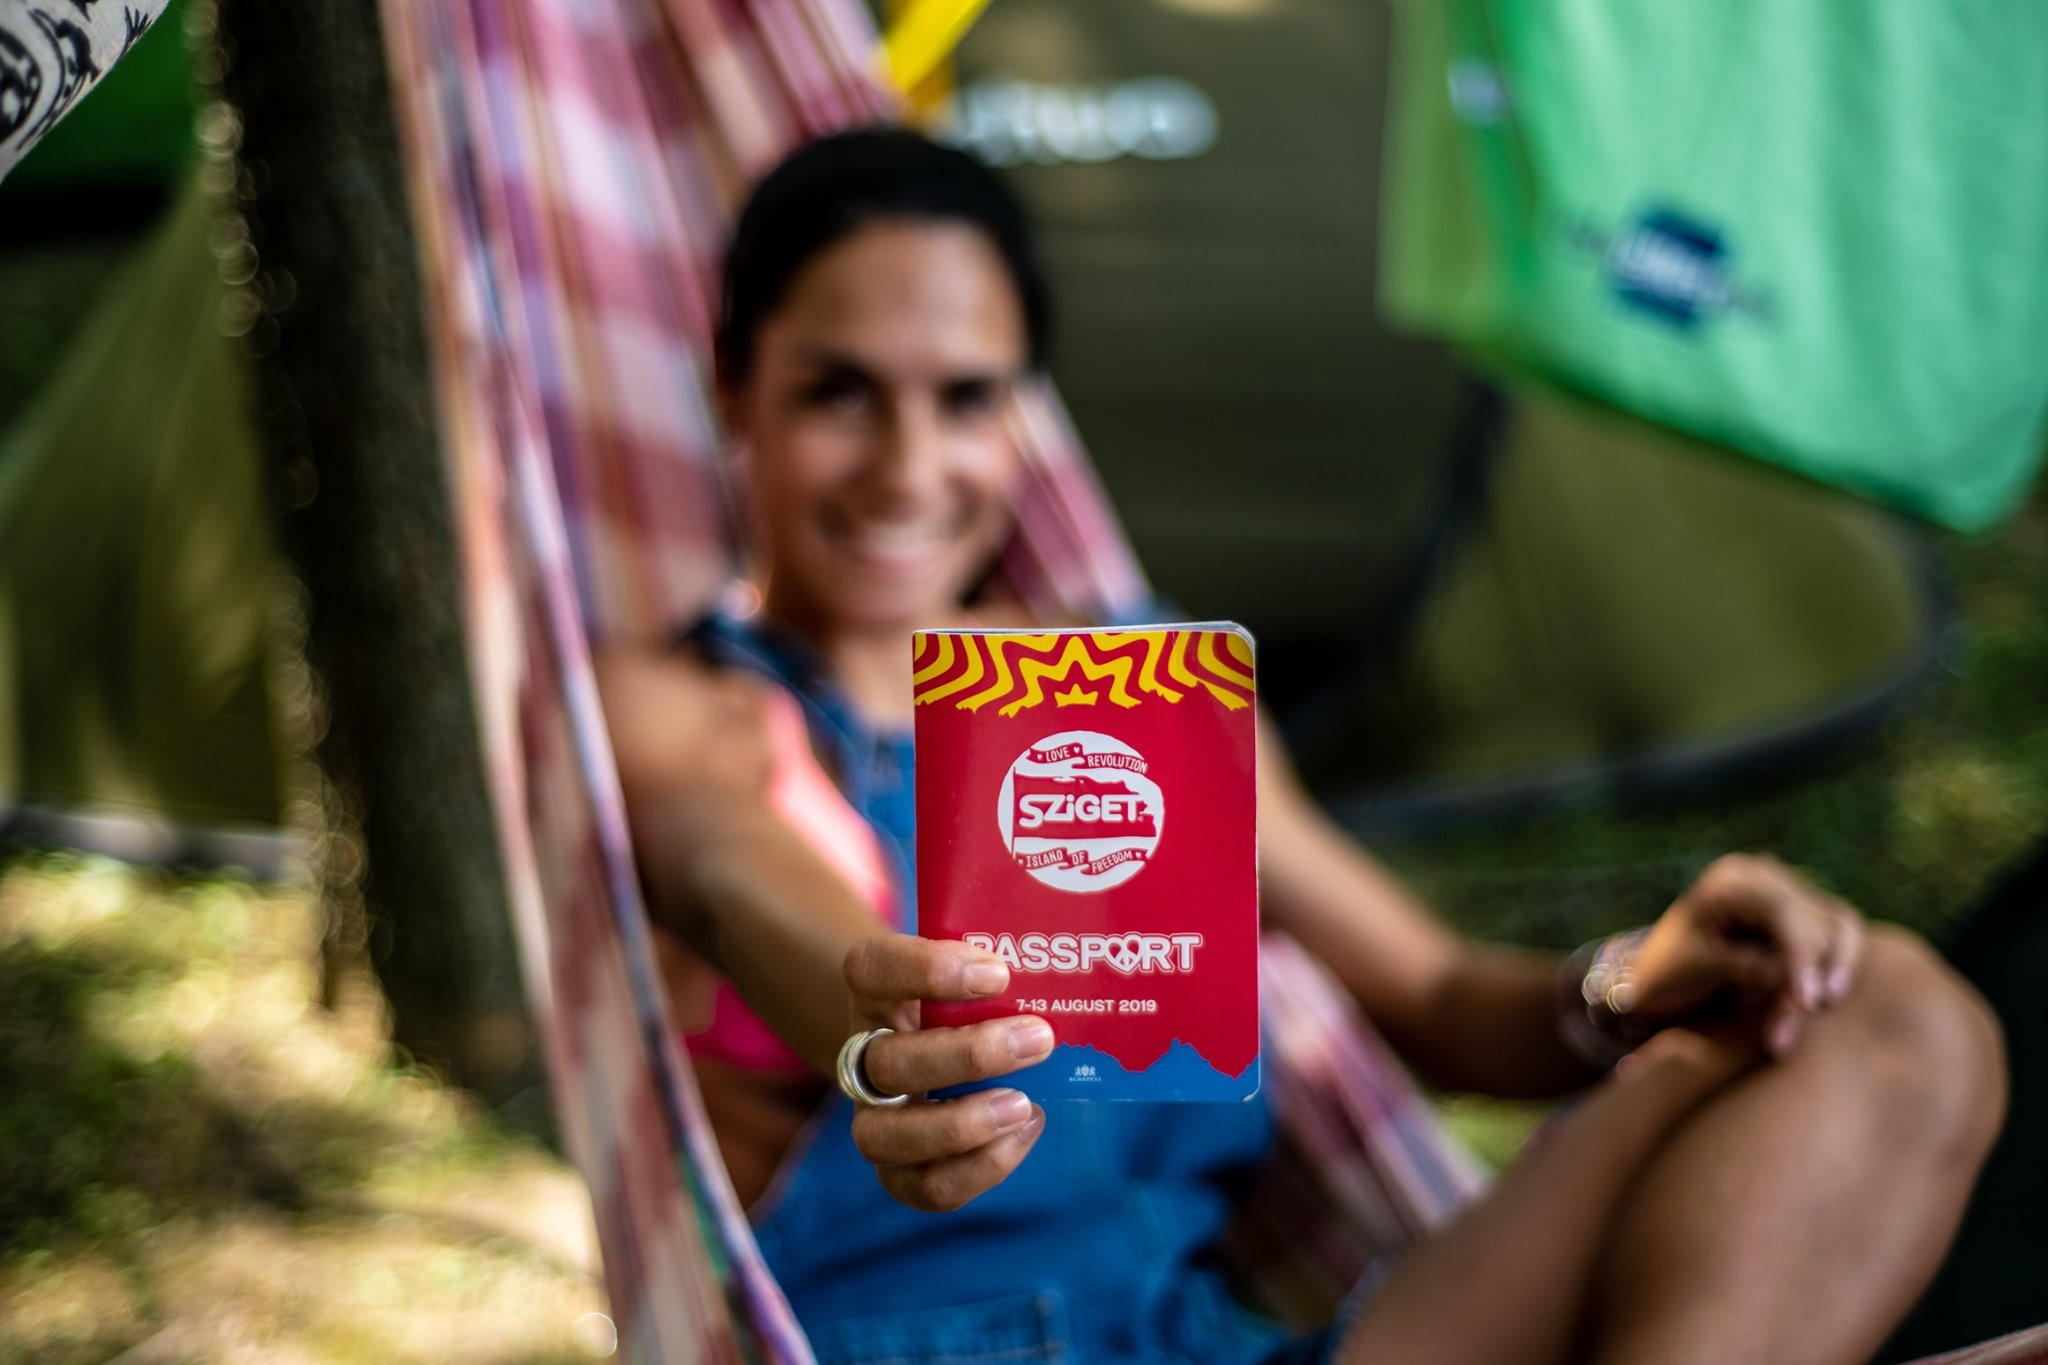 woman holding sziget passport